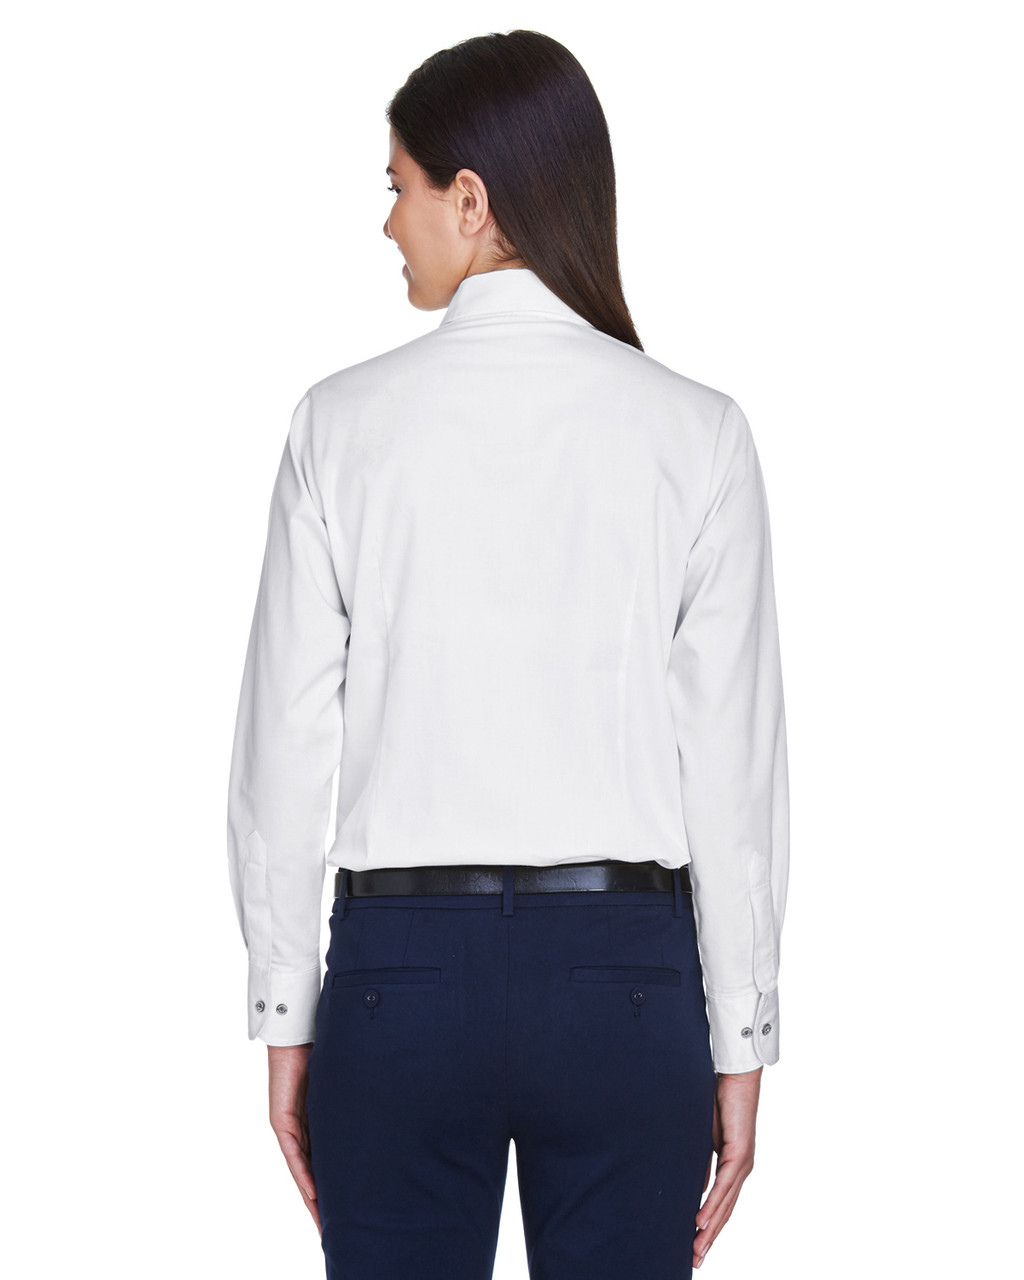 White - Back, M500W Harriton Easy Blend Long-Sleeve Twill Shirt with Stain-Release | BlankClothing.ca